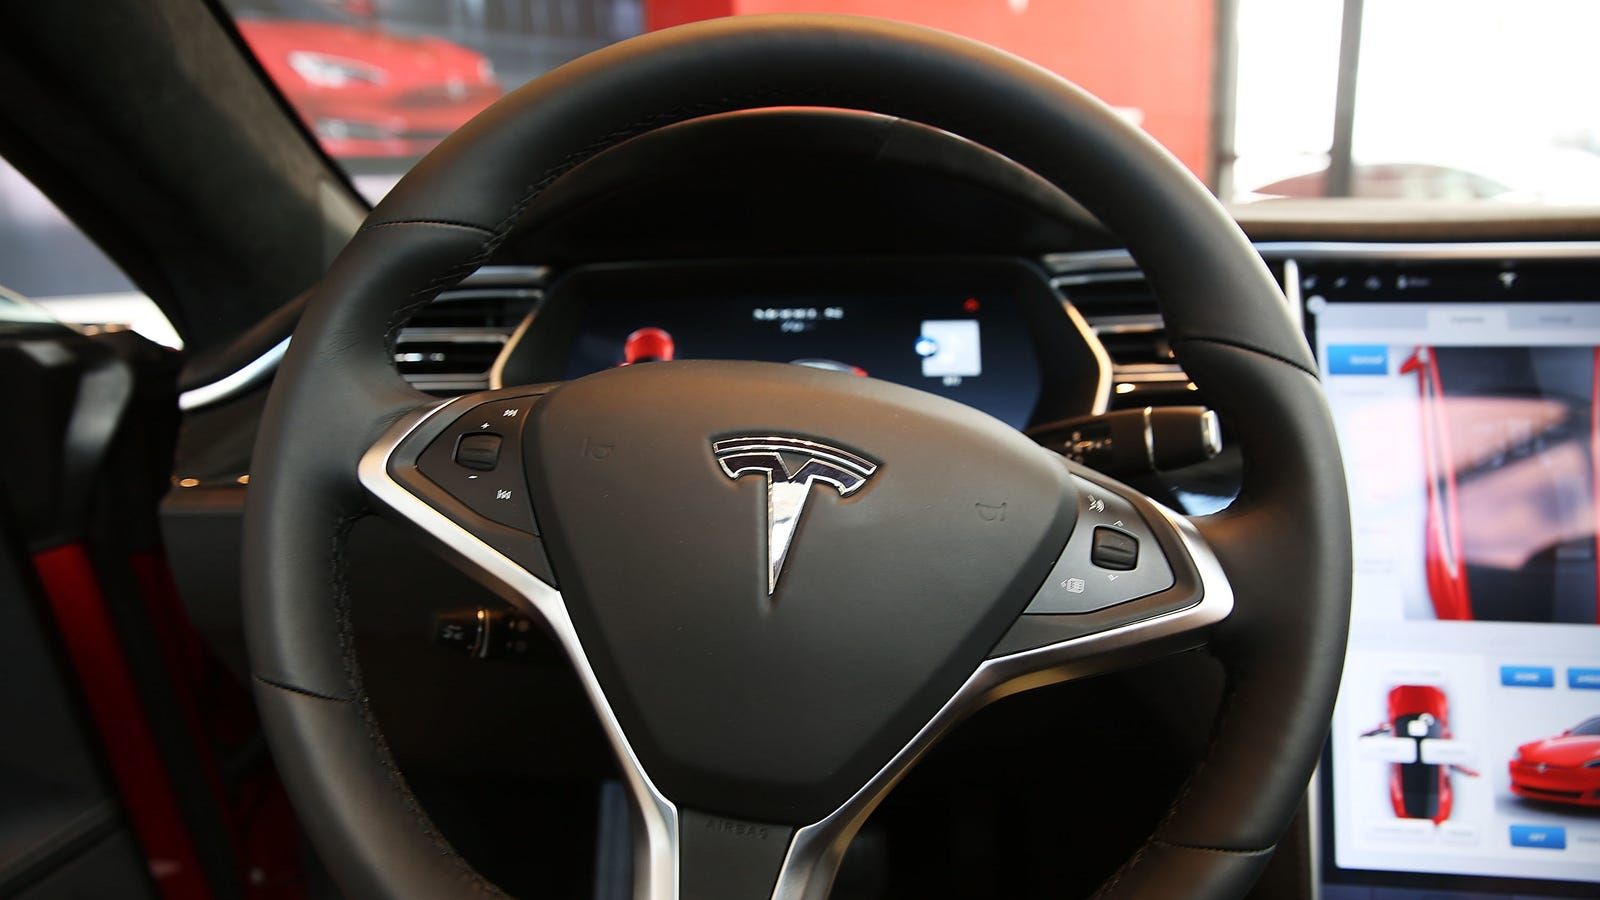 Ex-Tesla Engineer: Okay, Yes, I Uploaded Autopilot Trade Secrets to My iCloud—What's the Big Deal?